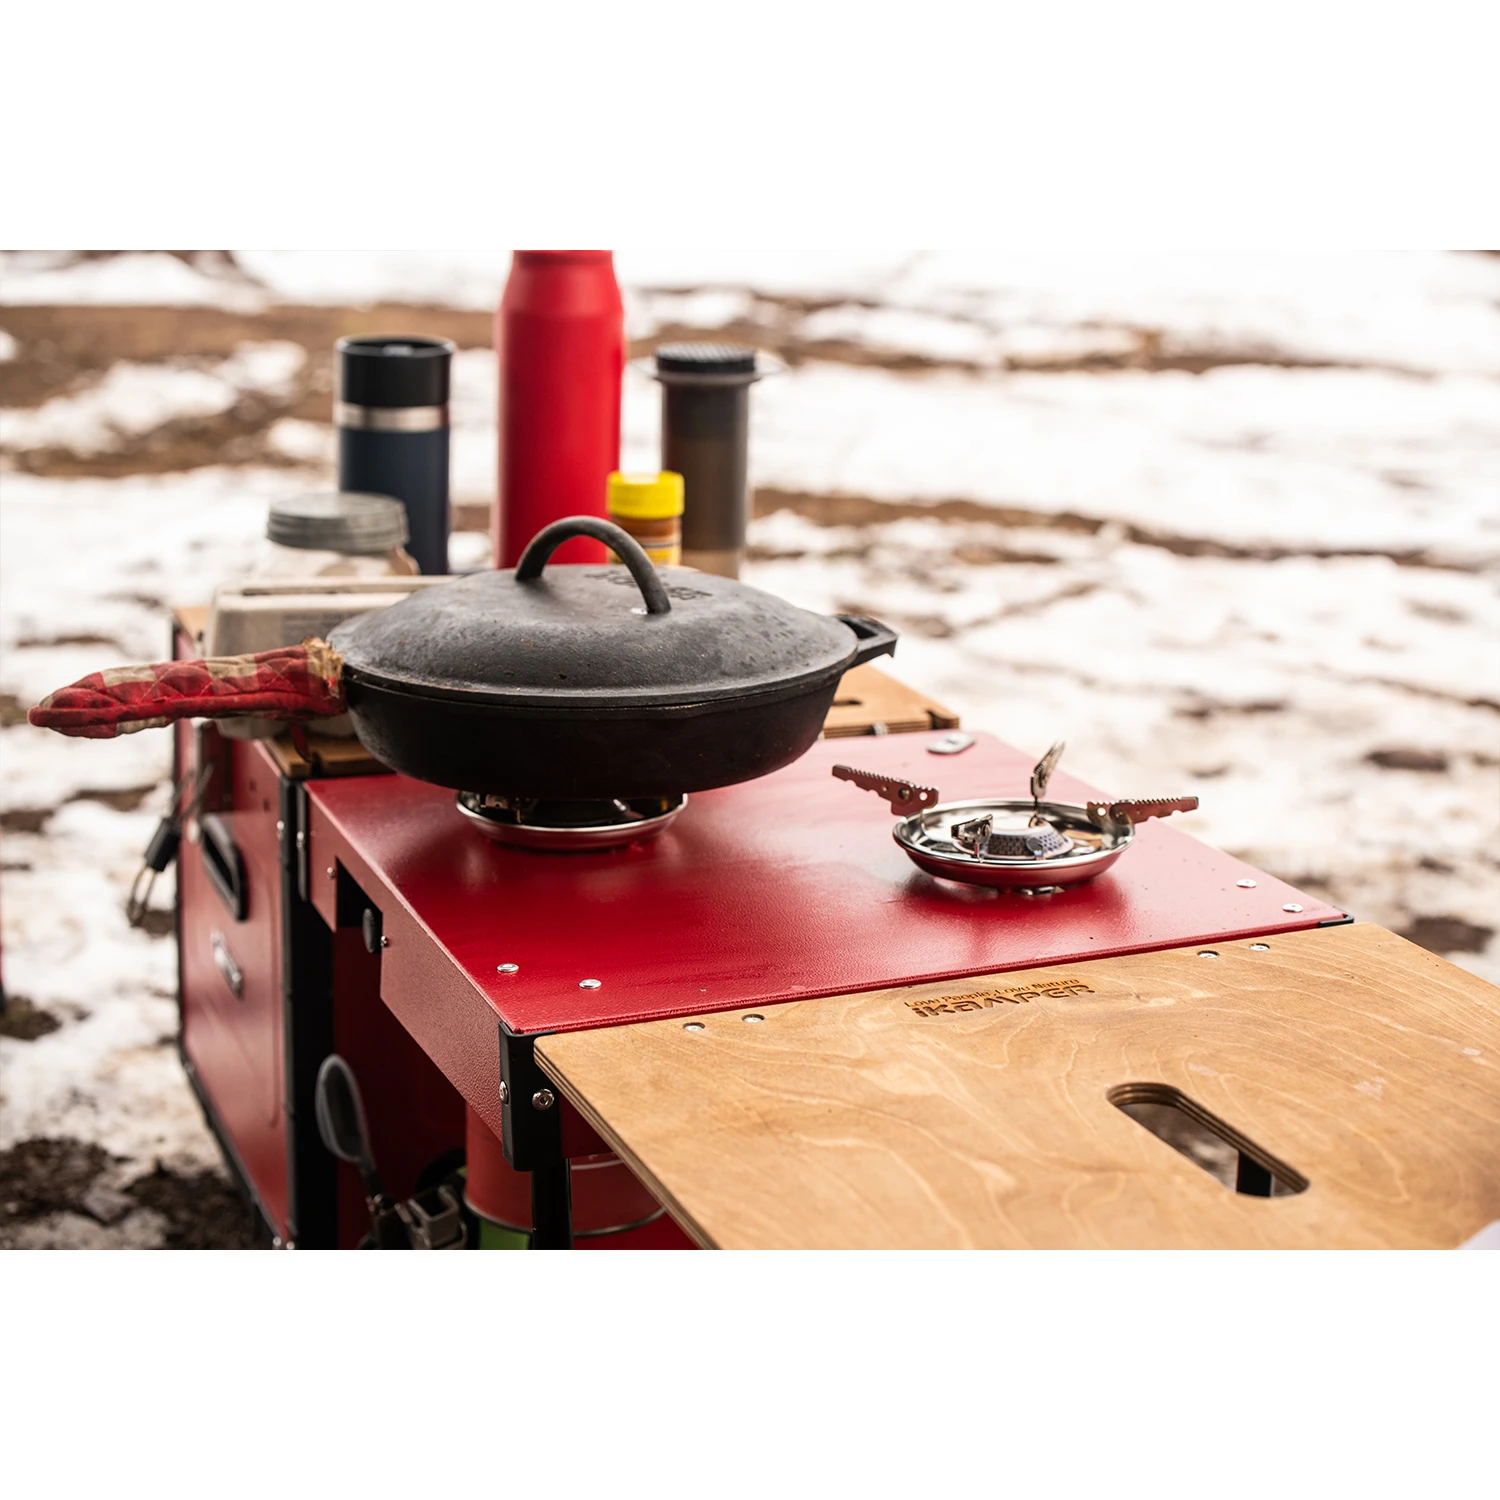 cooking while overlanding